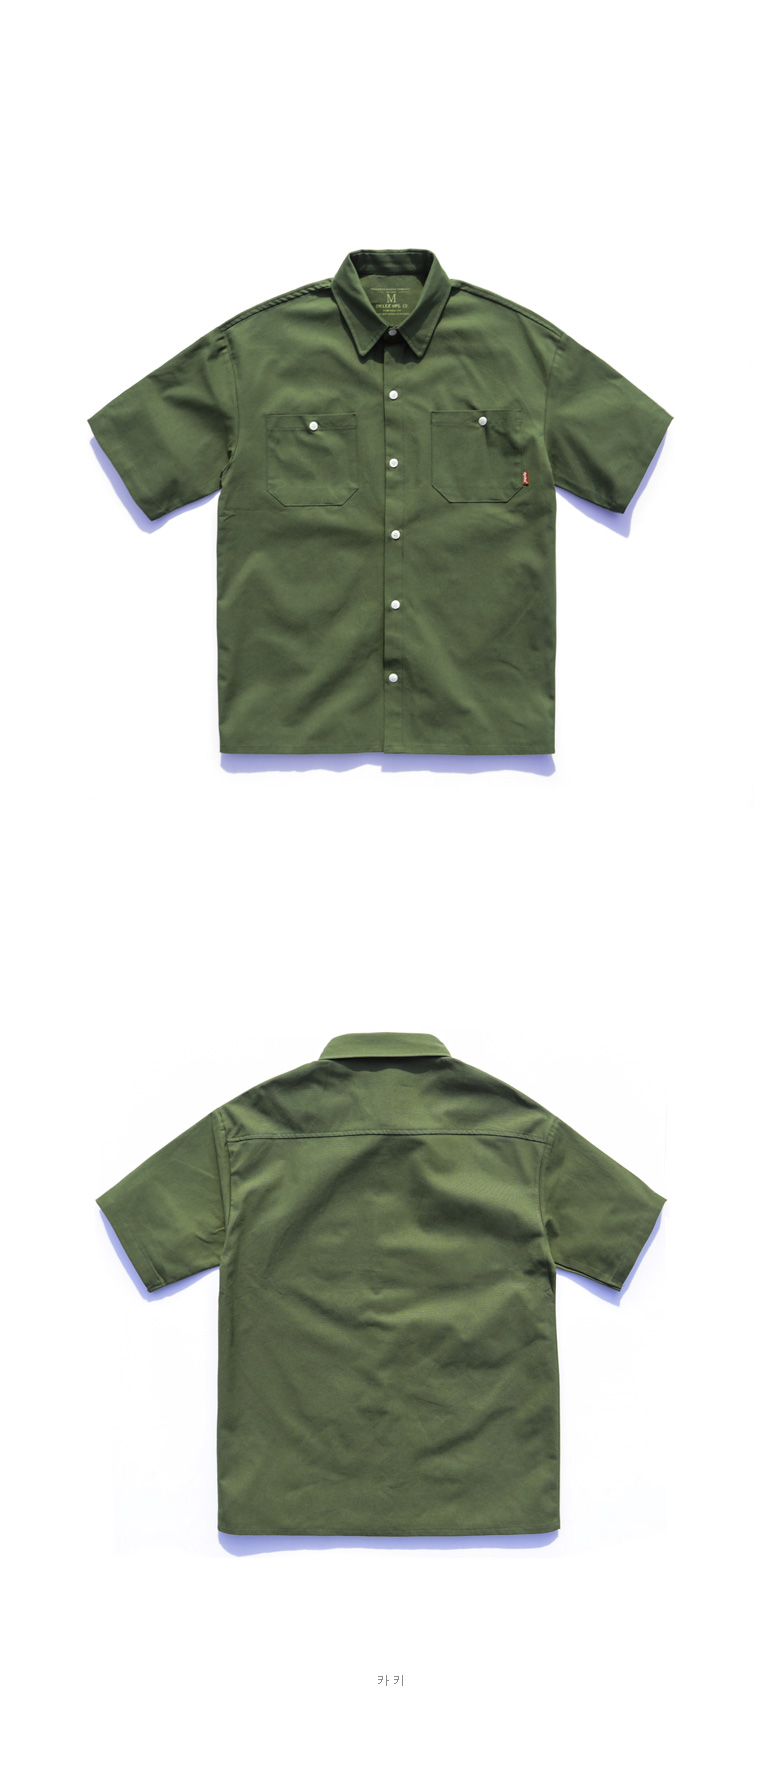 20180412_dy_twopocket_shirt_khaki_uk_01.jpg